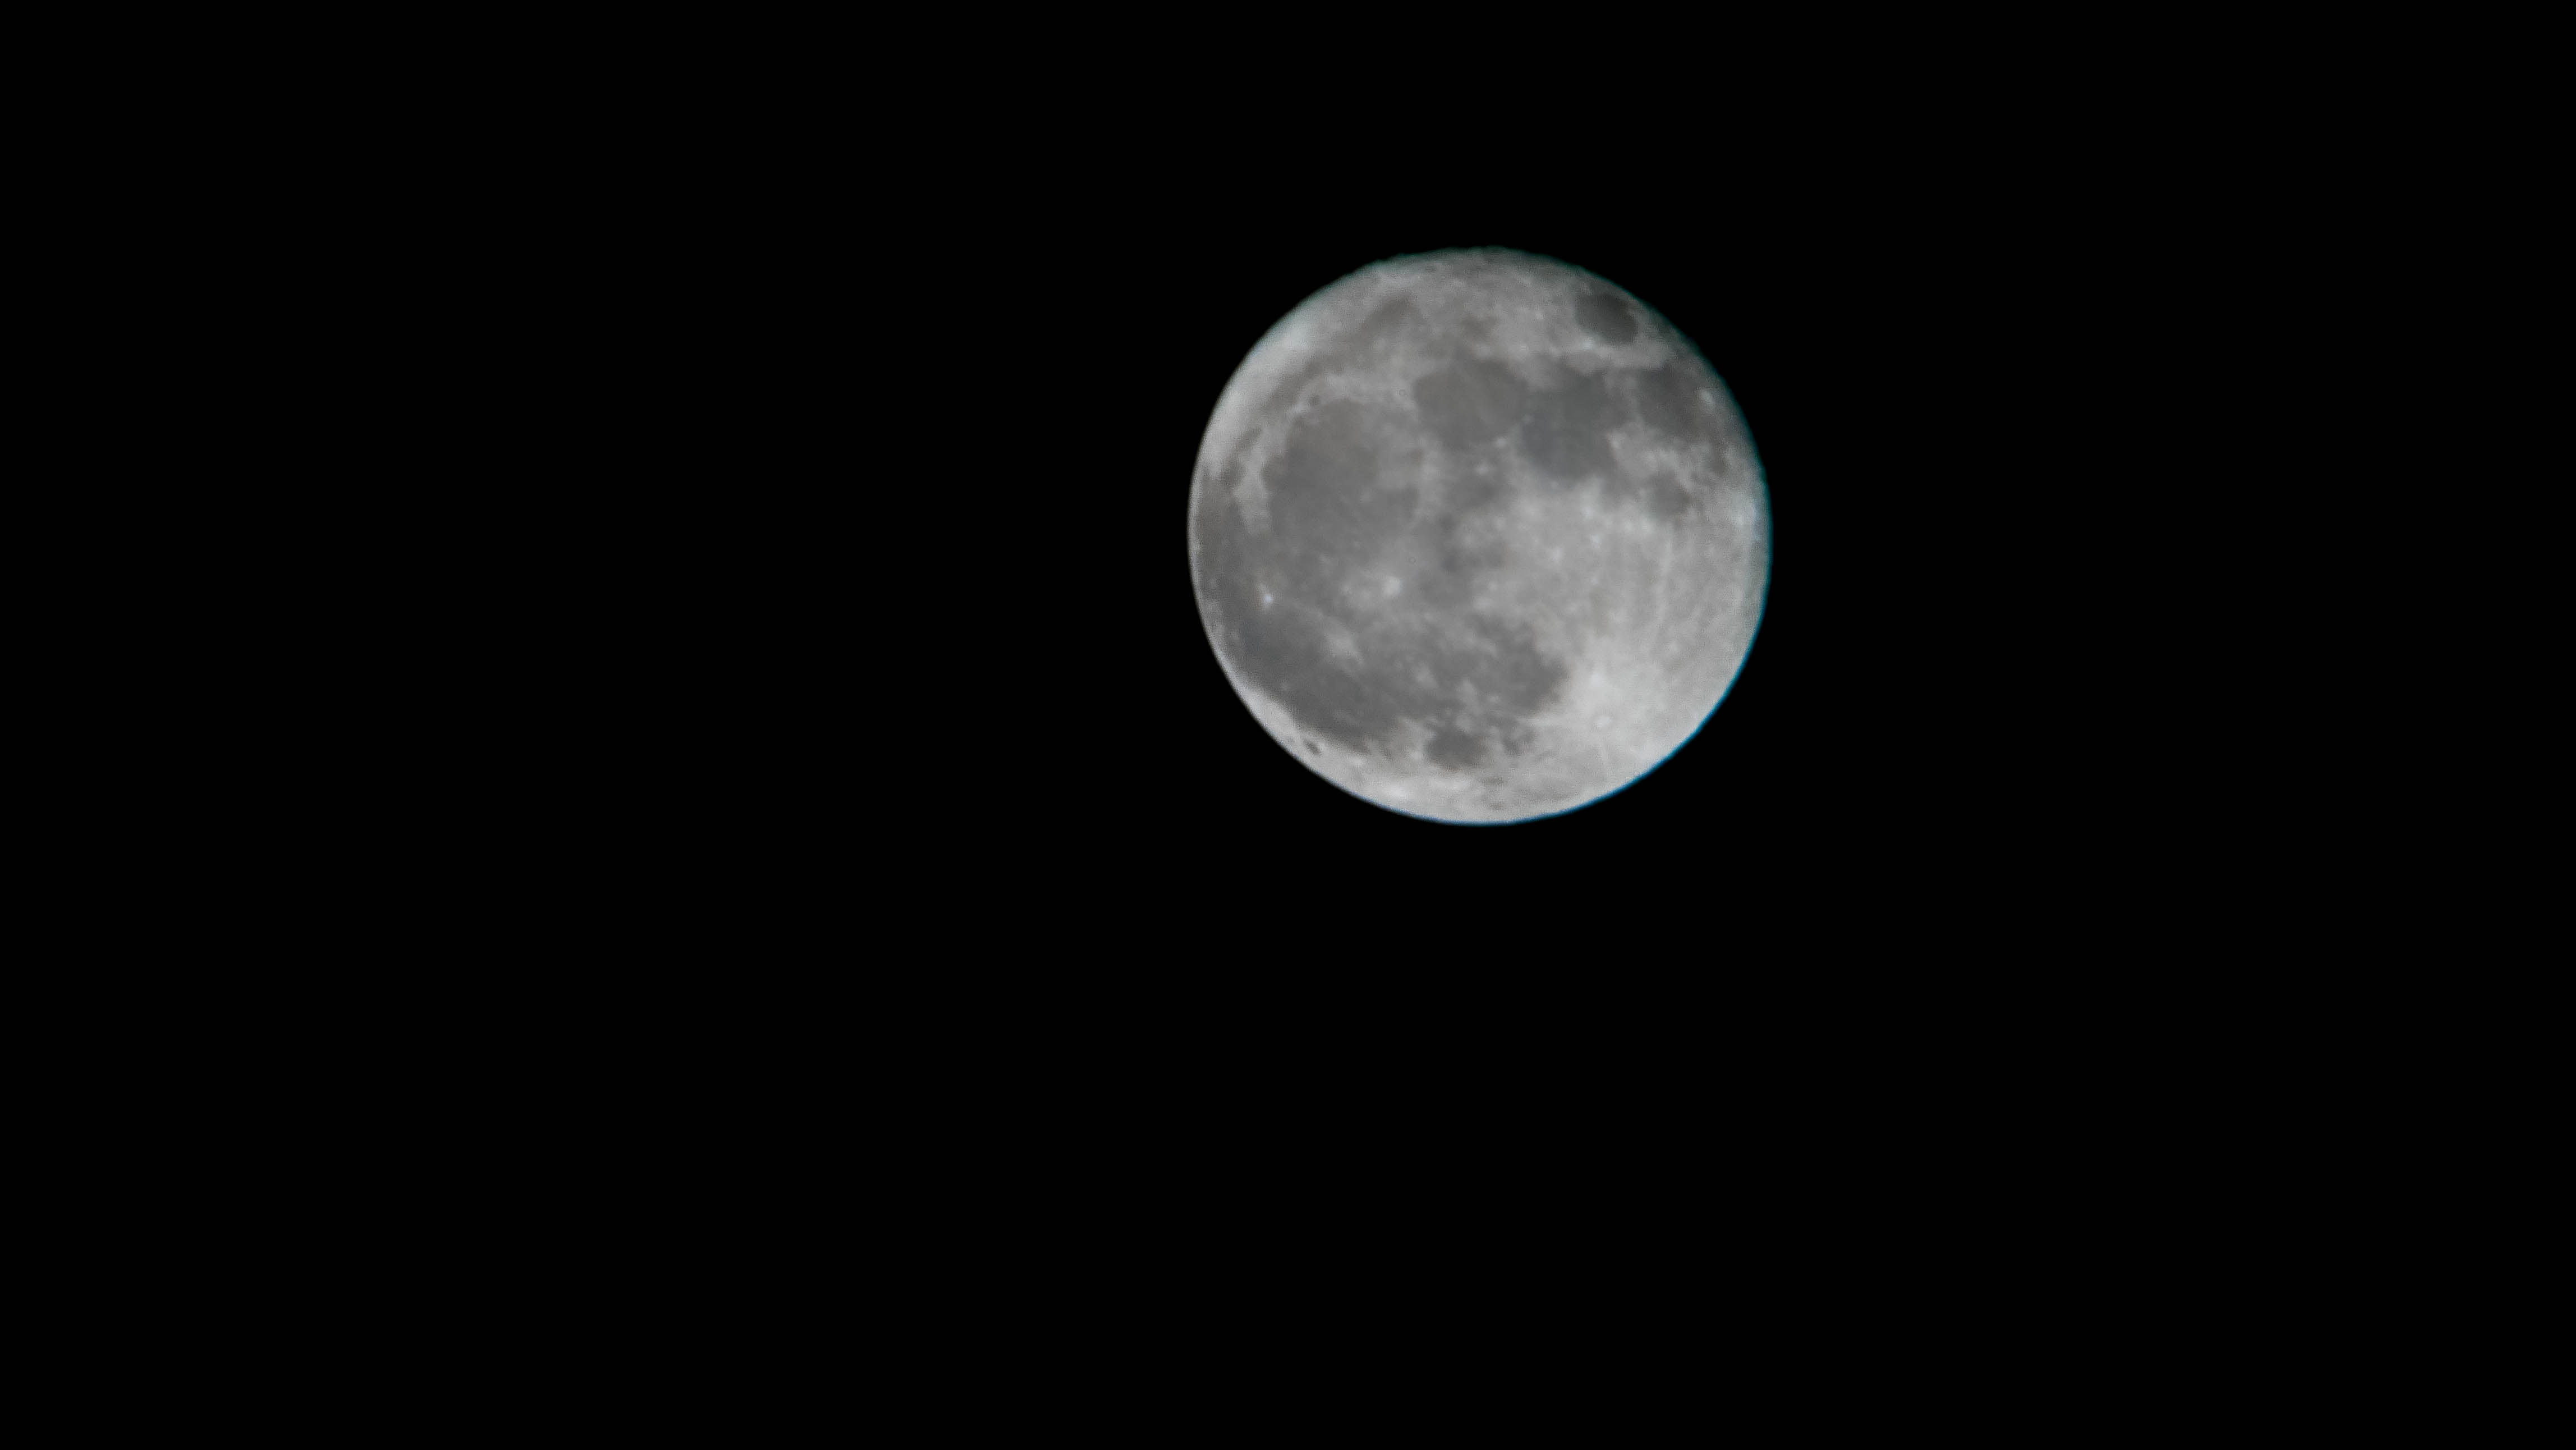 600mm lens, full moon, 4K photograph